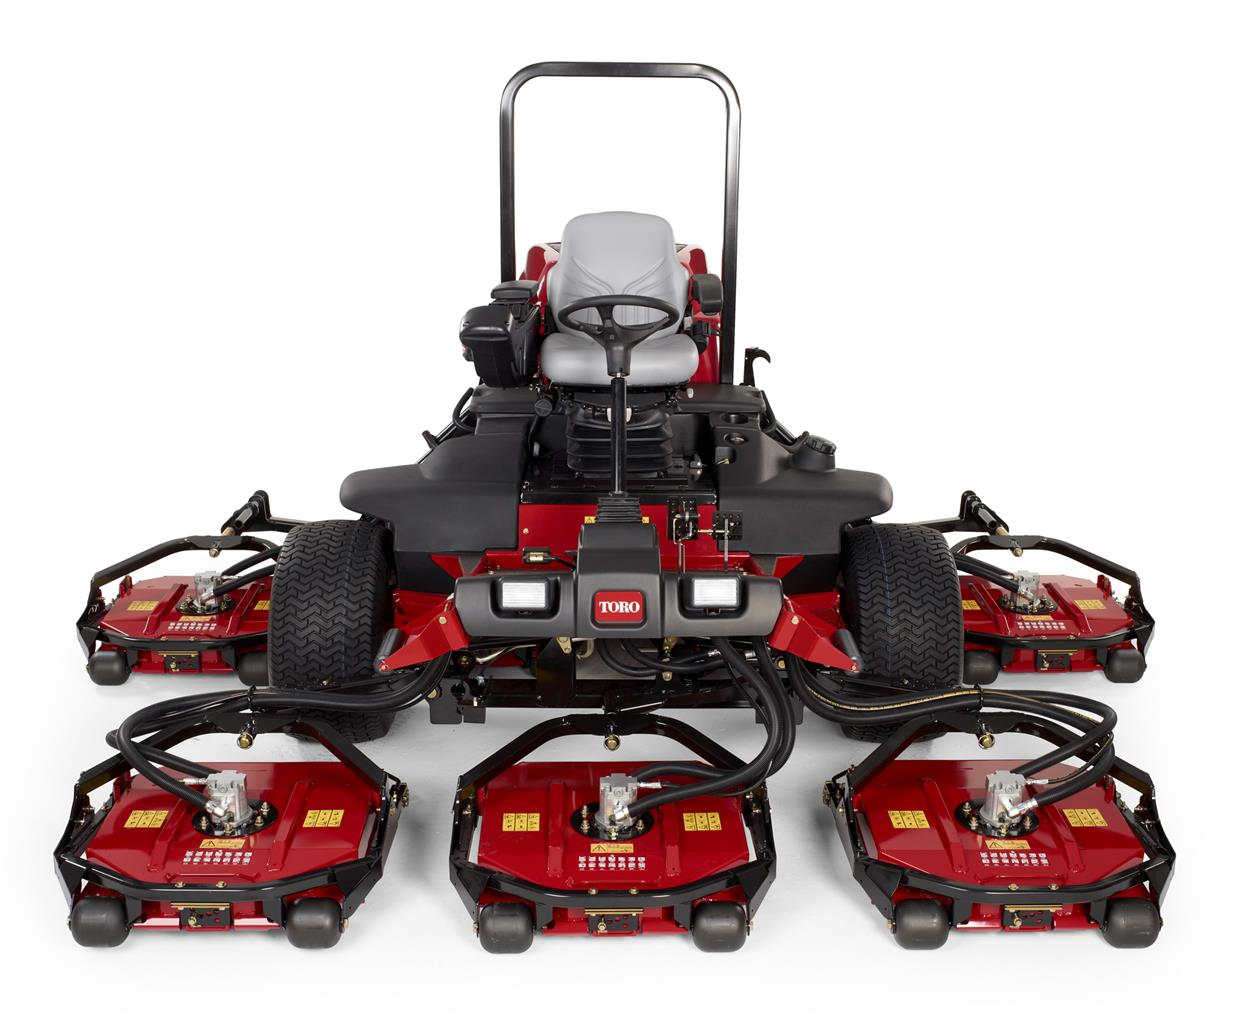 groundsmaster 4700 front.ashx?mw=700&mh=599&hash=F13194F91BF7A0A6052C9665A5C8AFE094A8D088 toro groundsmaster� 4700 d (30882) Toro Groundsmaster 117 Parting Out at crackthecode.co